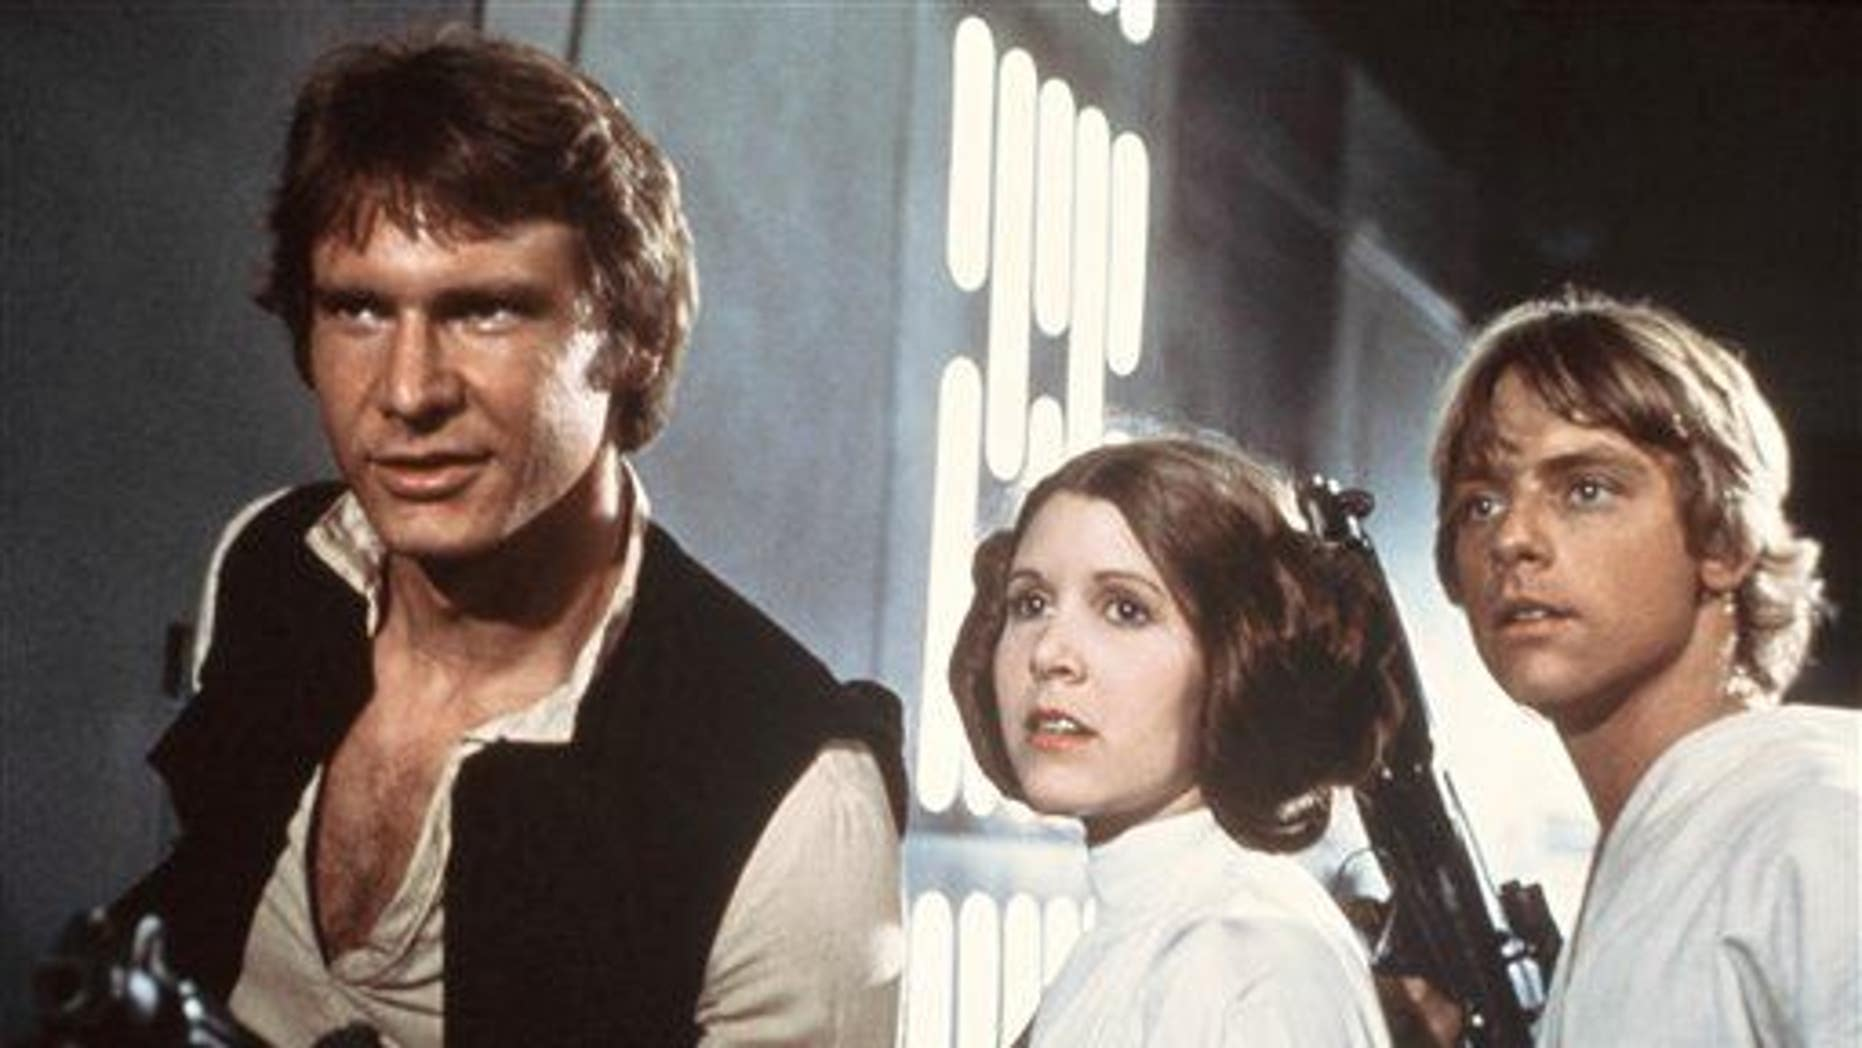 """This 1977 file image shows Harrison Ford, Carrie Fisher, and Mark Hamill in a scene from """"Star Wars."""""""